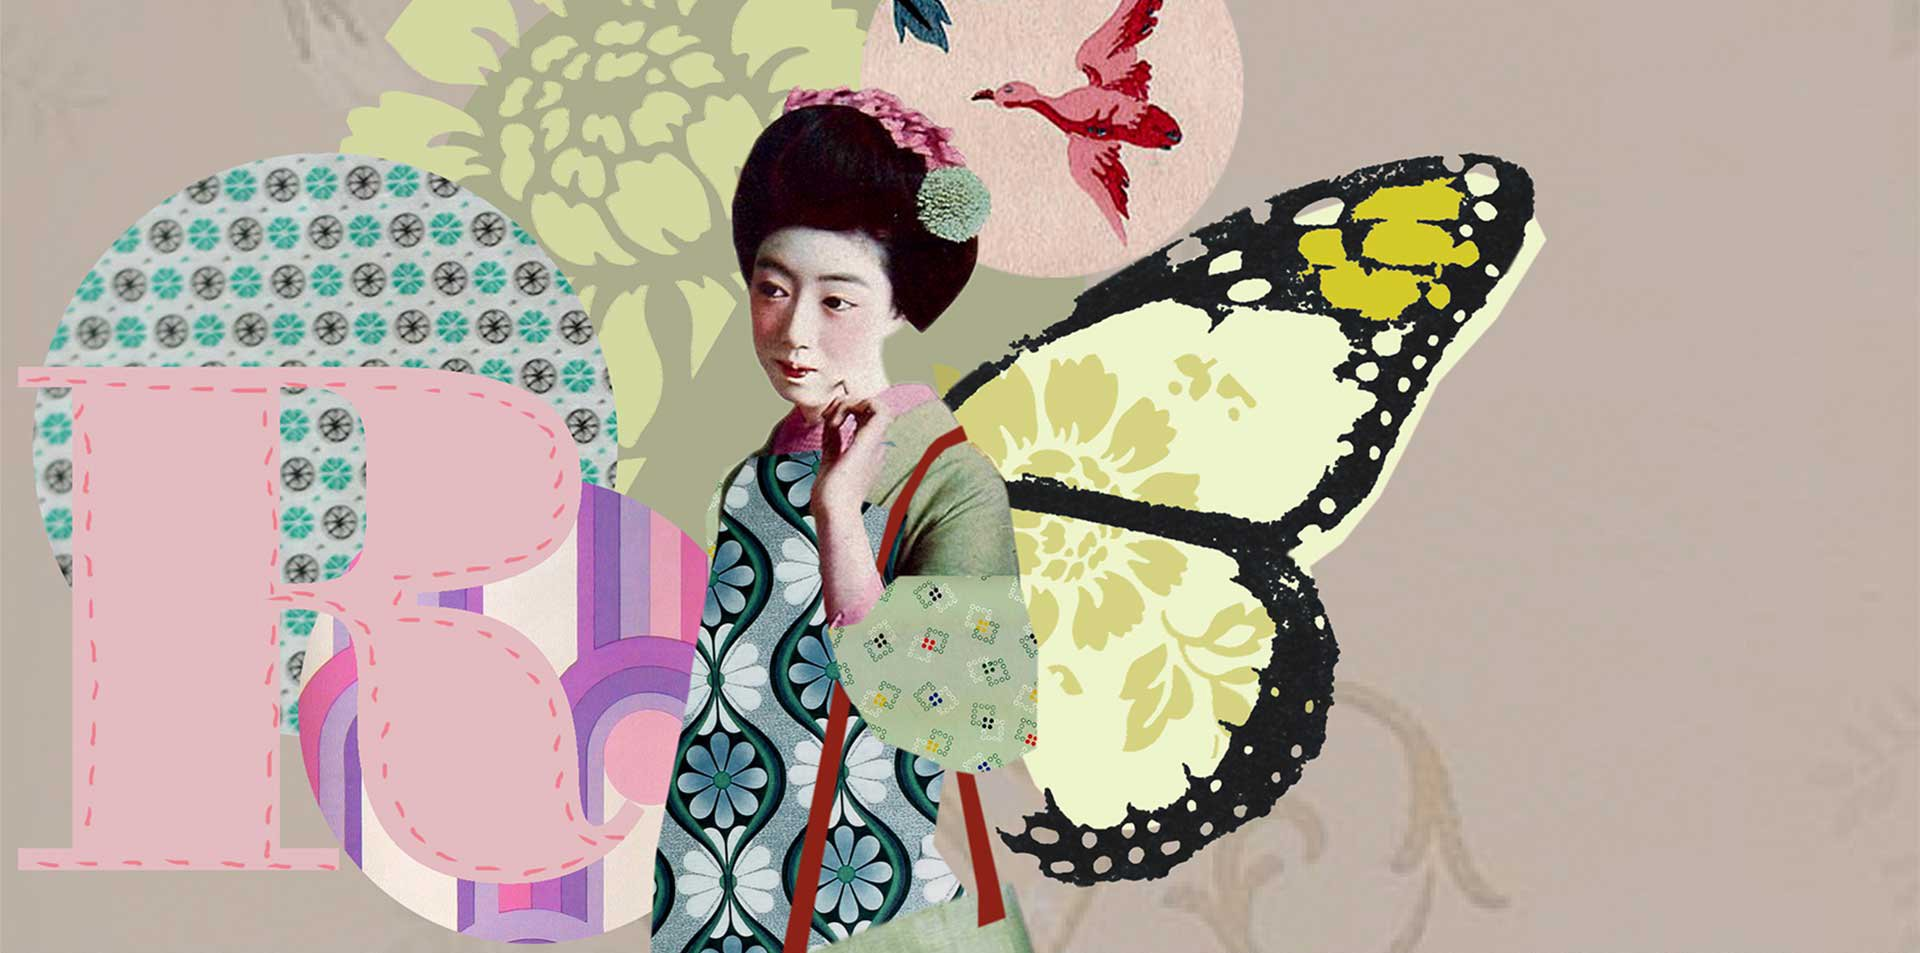 animated character of Geisha Girl with butterfly wings